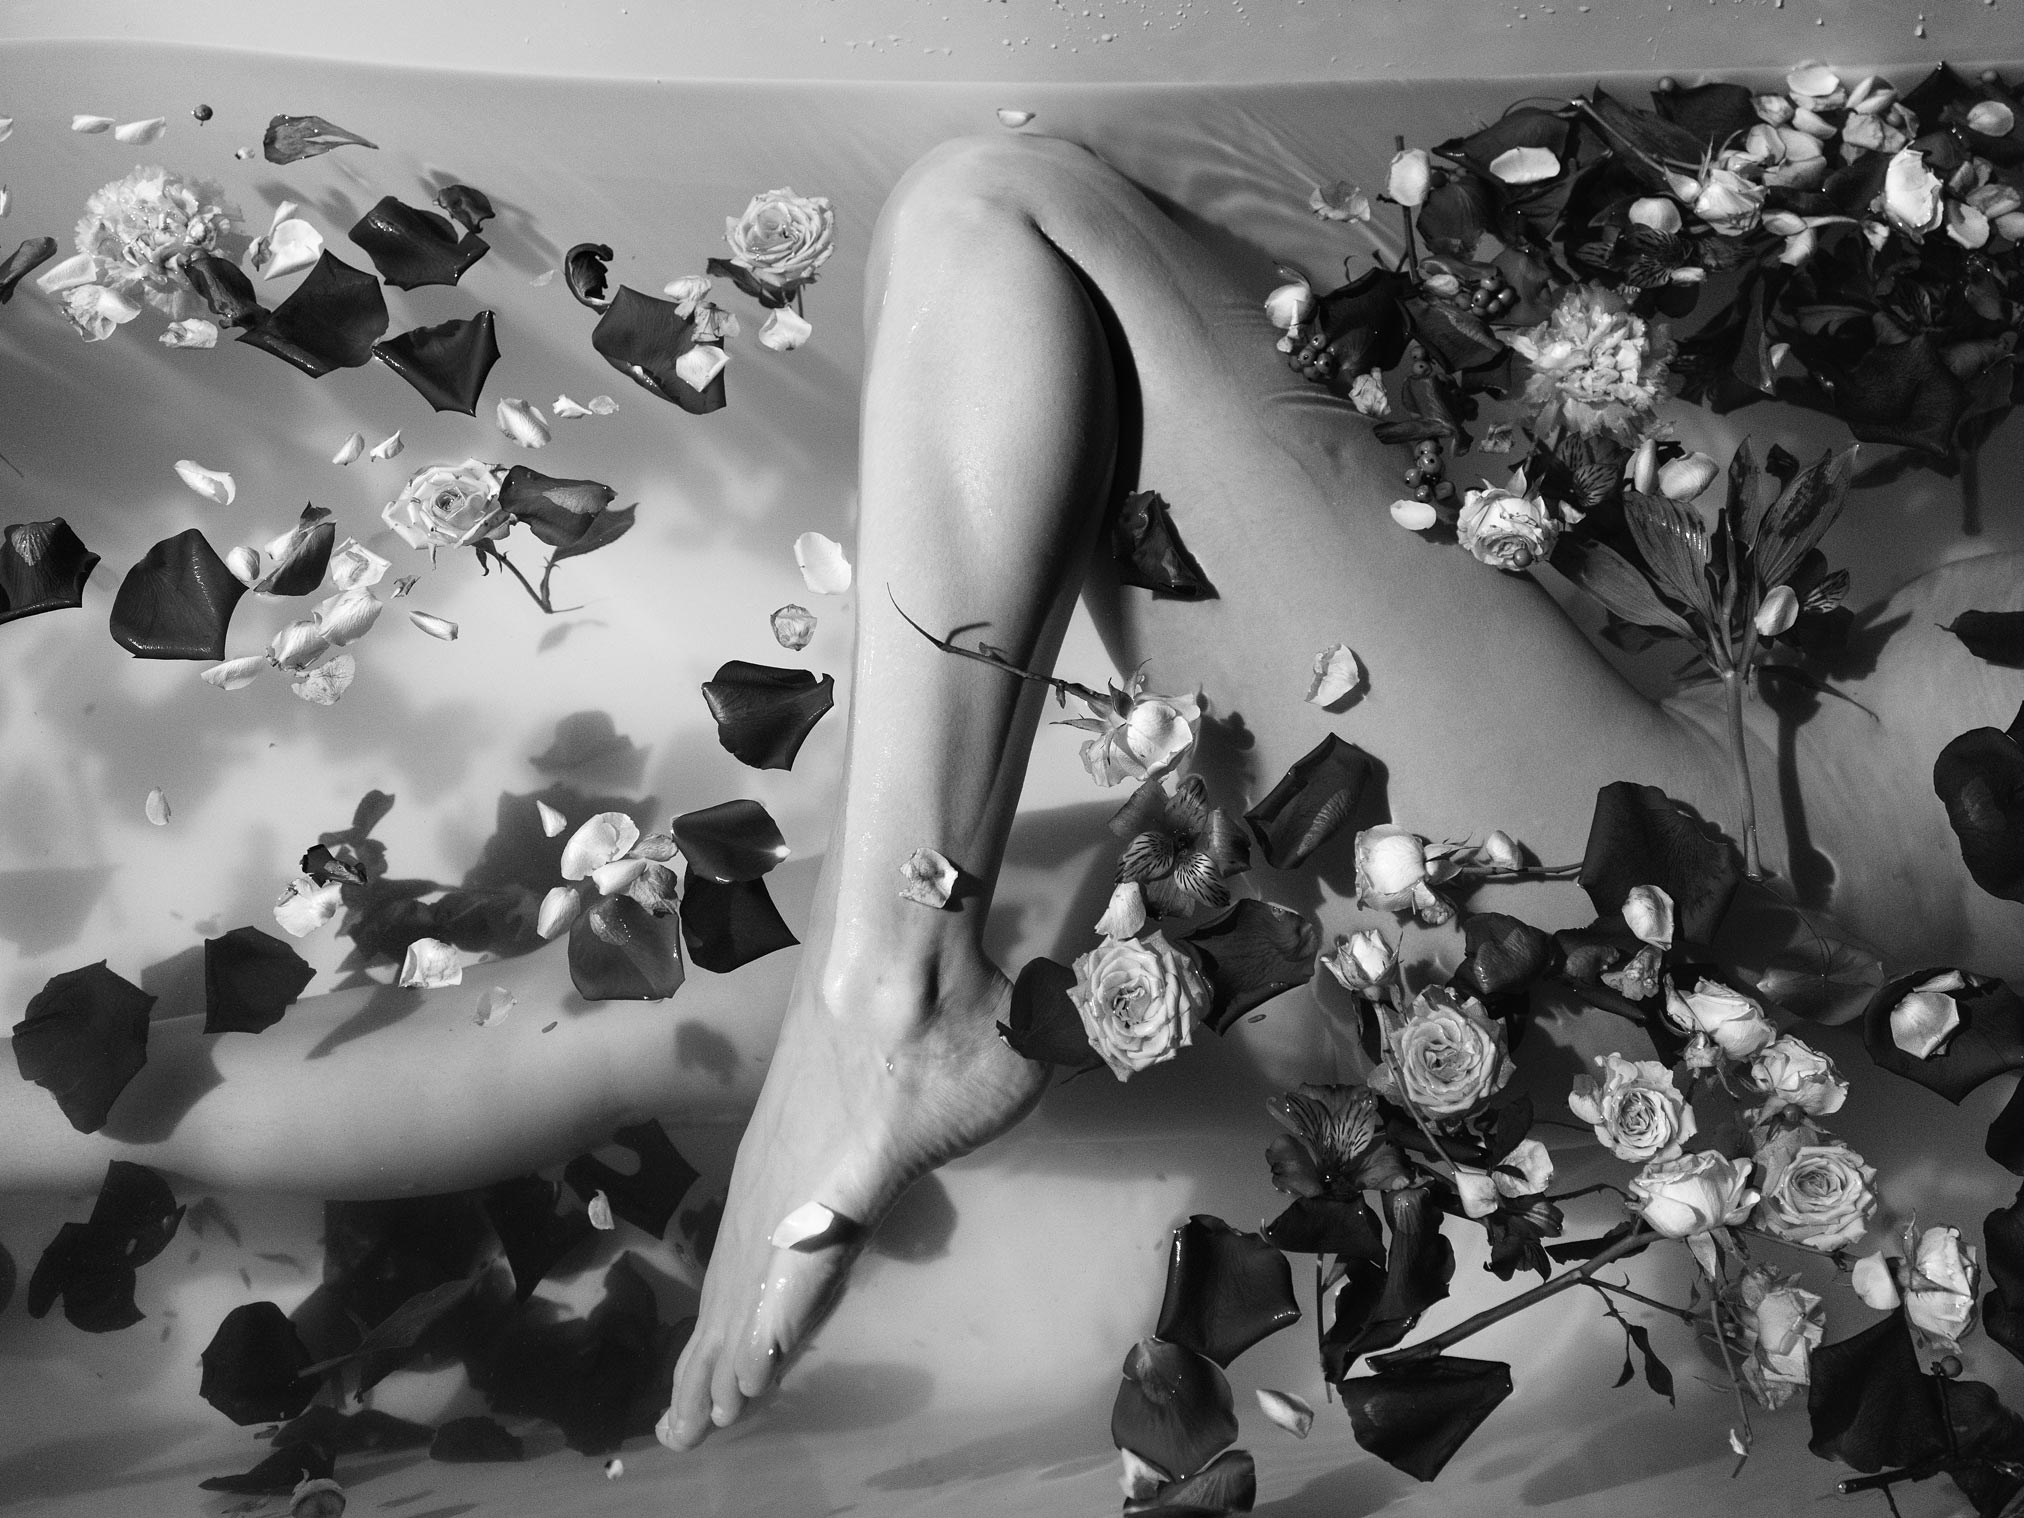 lovegrove-hollywood-60 is a picture of a girls leg in a bath of rose petals